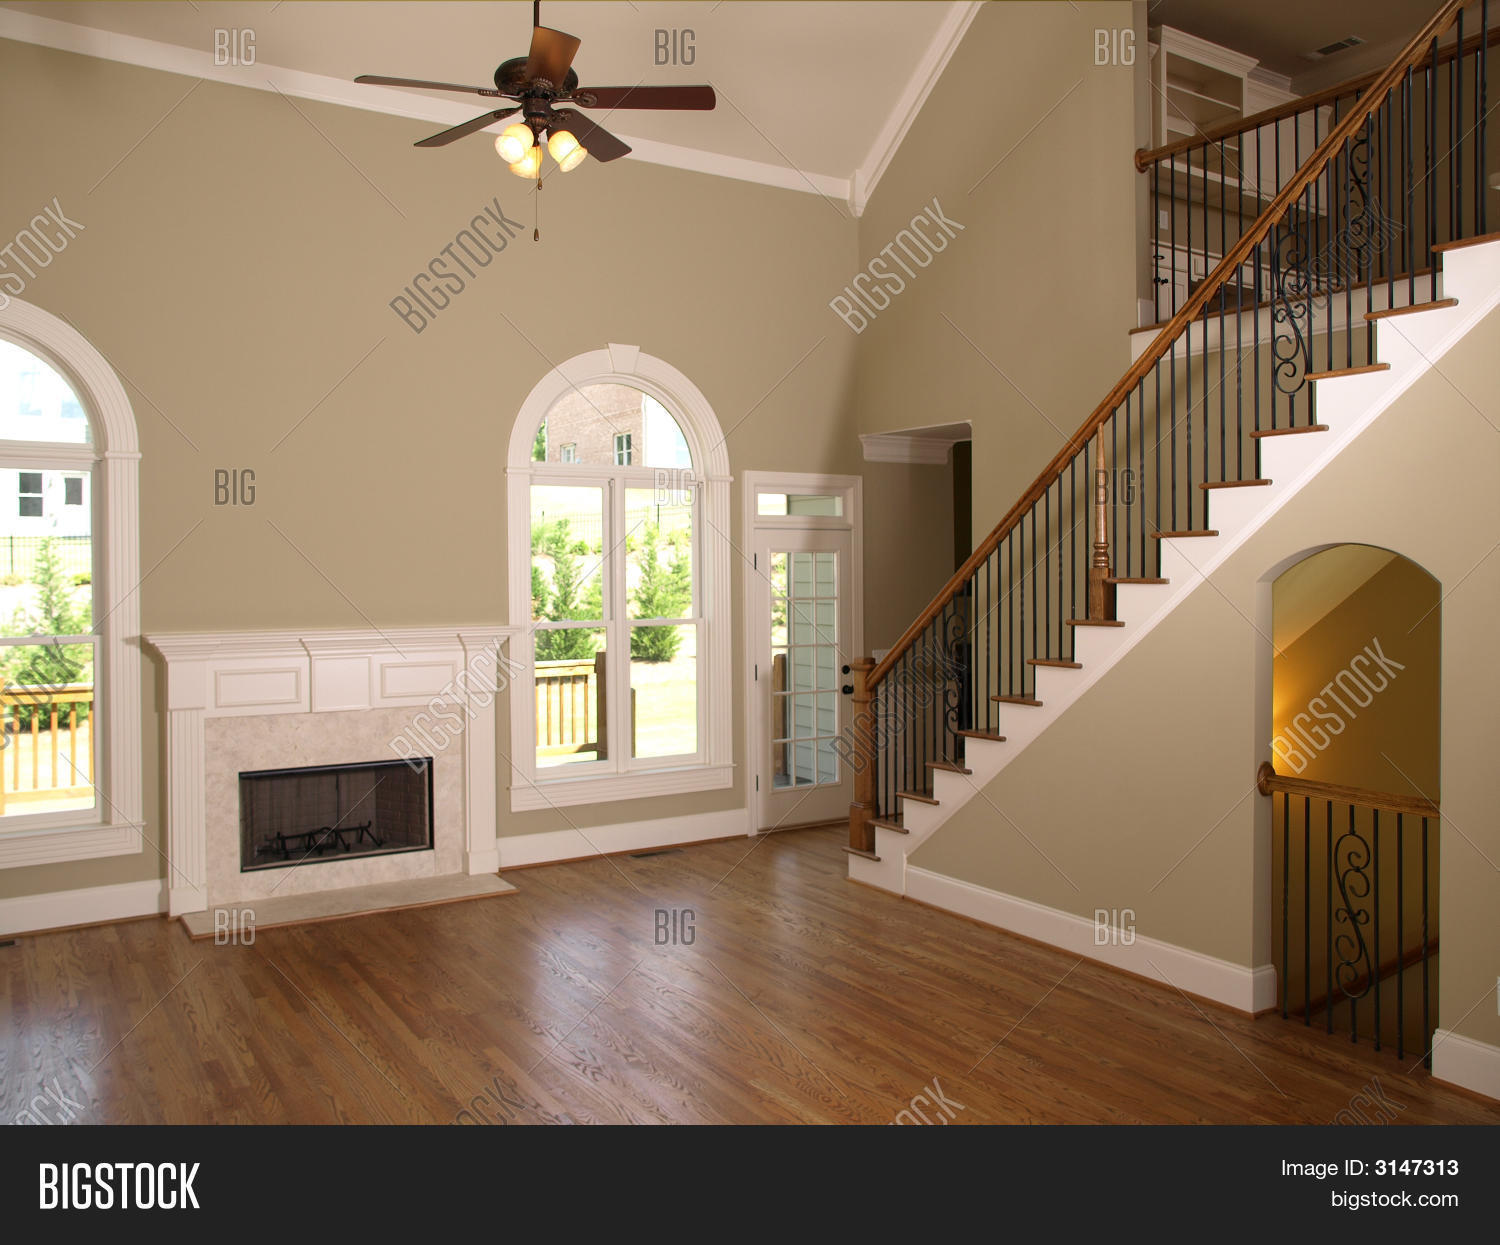 Luxury model home living room image photo bigstock for Model home living room